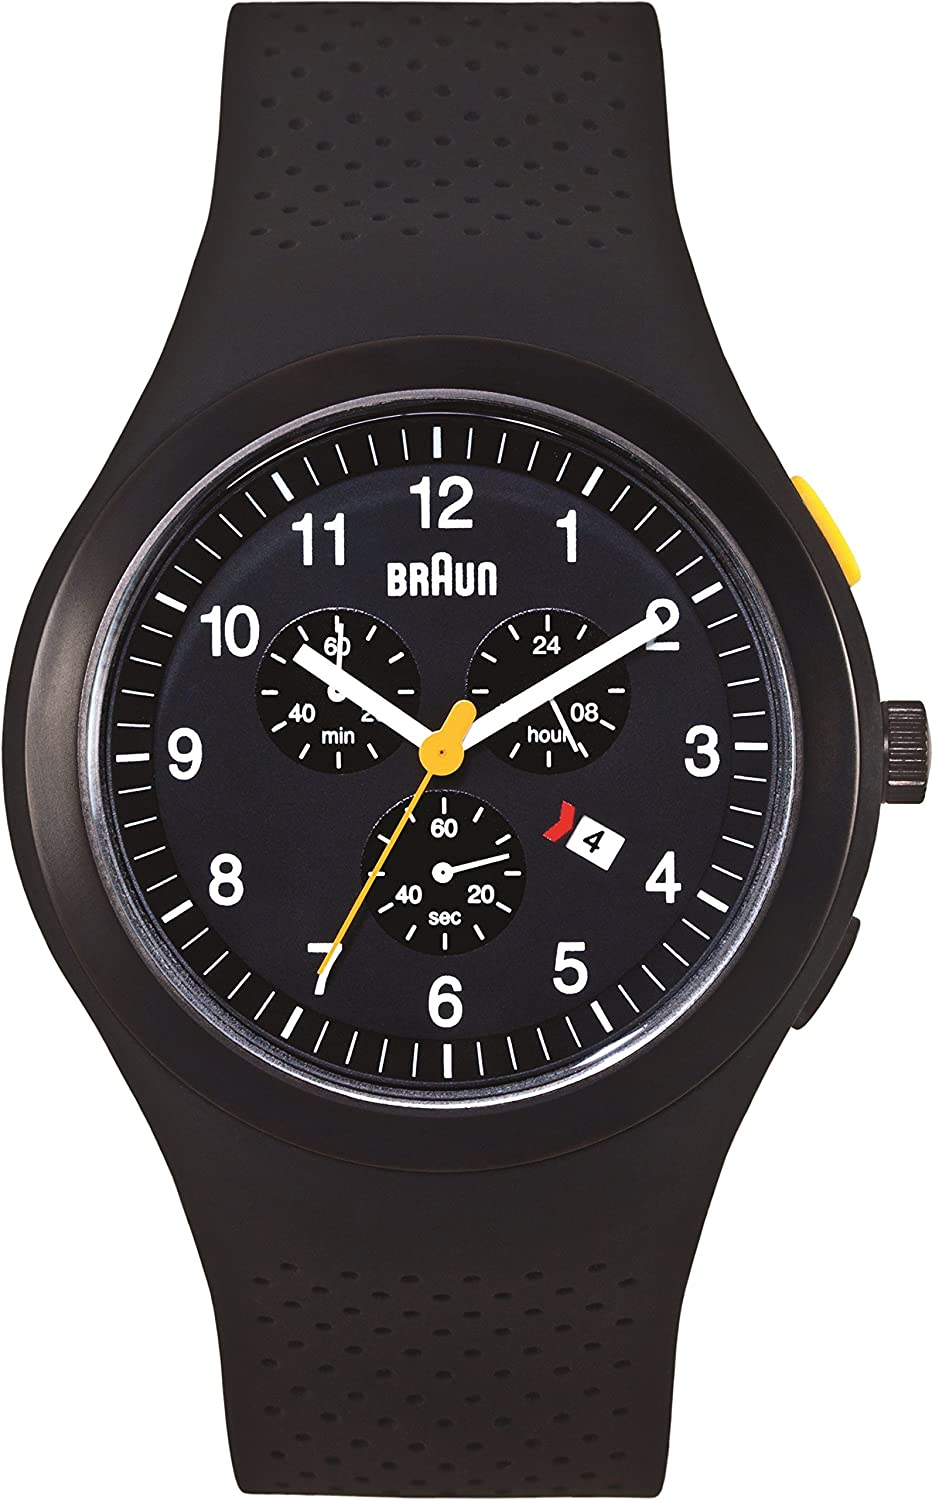 Braun Chronograph Sports Watch